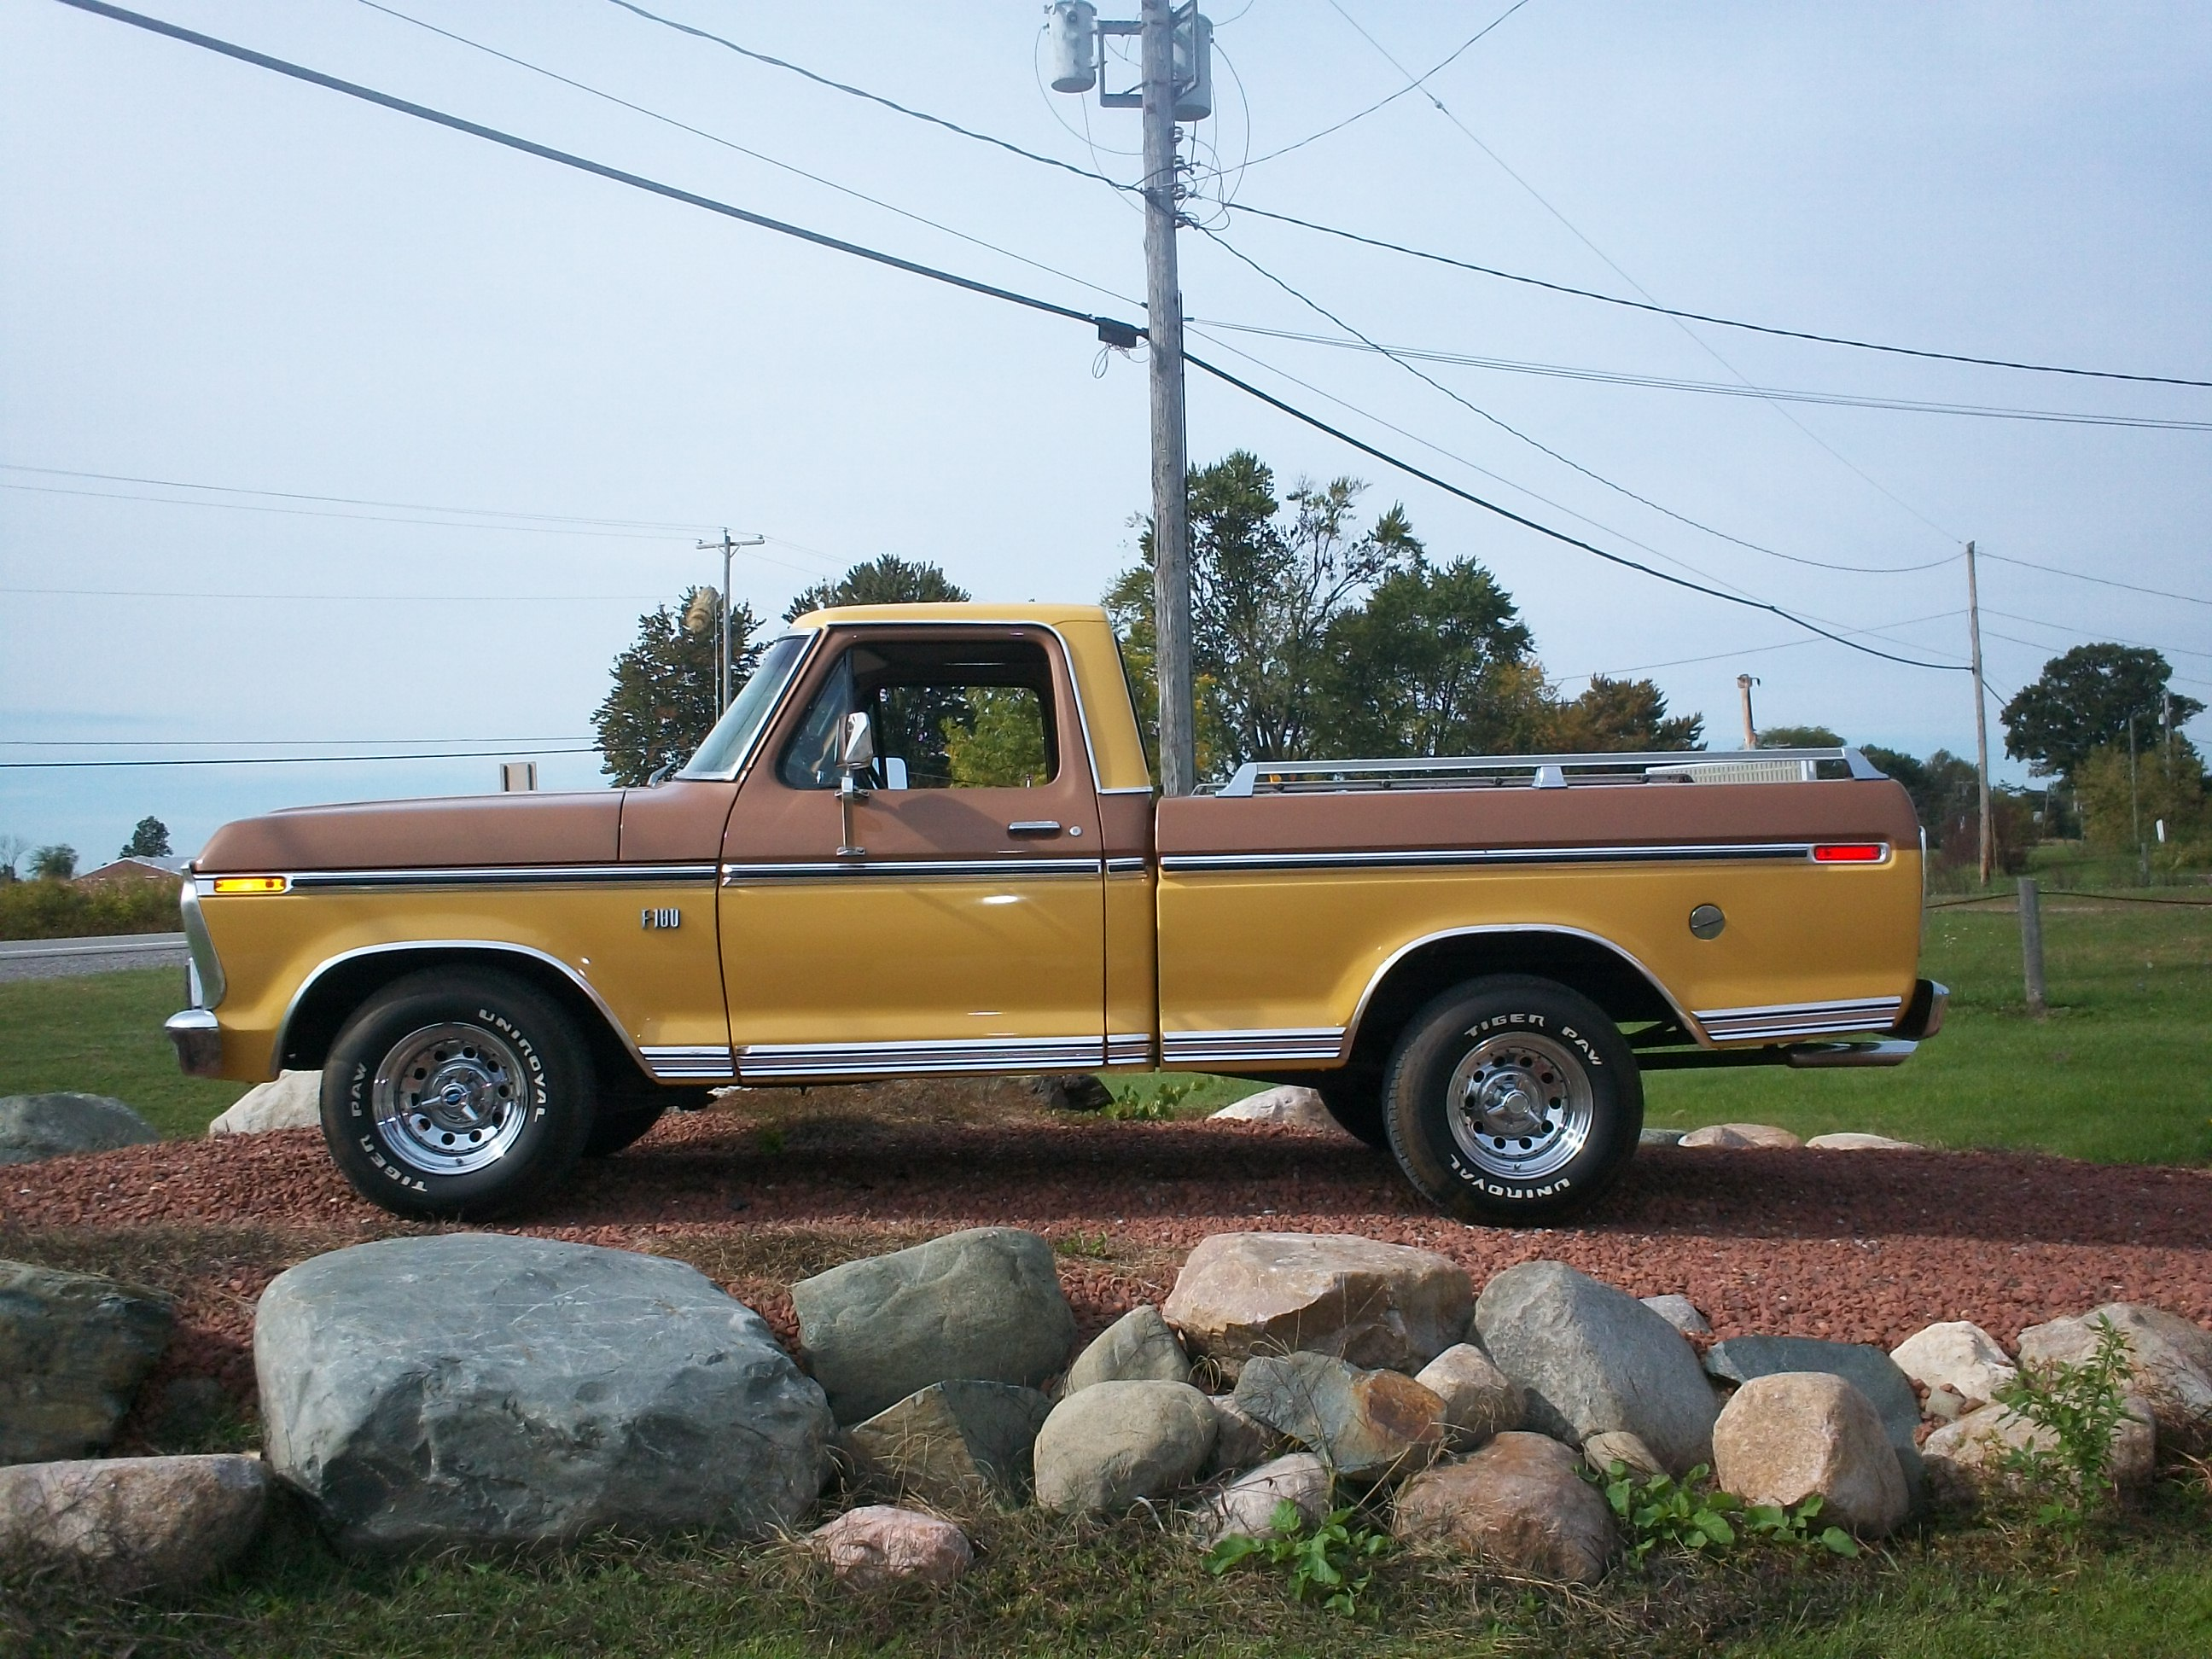 Ford F100 Pictures Posters News And Videos On Your Pursuit In Addition Mustang Front Suspension Diagram 1962 Picture D49b9d75b8a64a6b8468038e3fe3c2 Motoraustincom 1965delanop Ar Bobbittvillecom